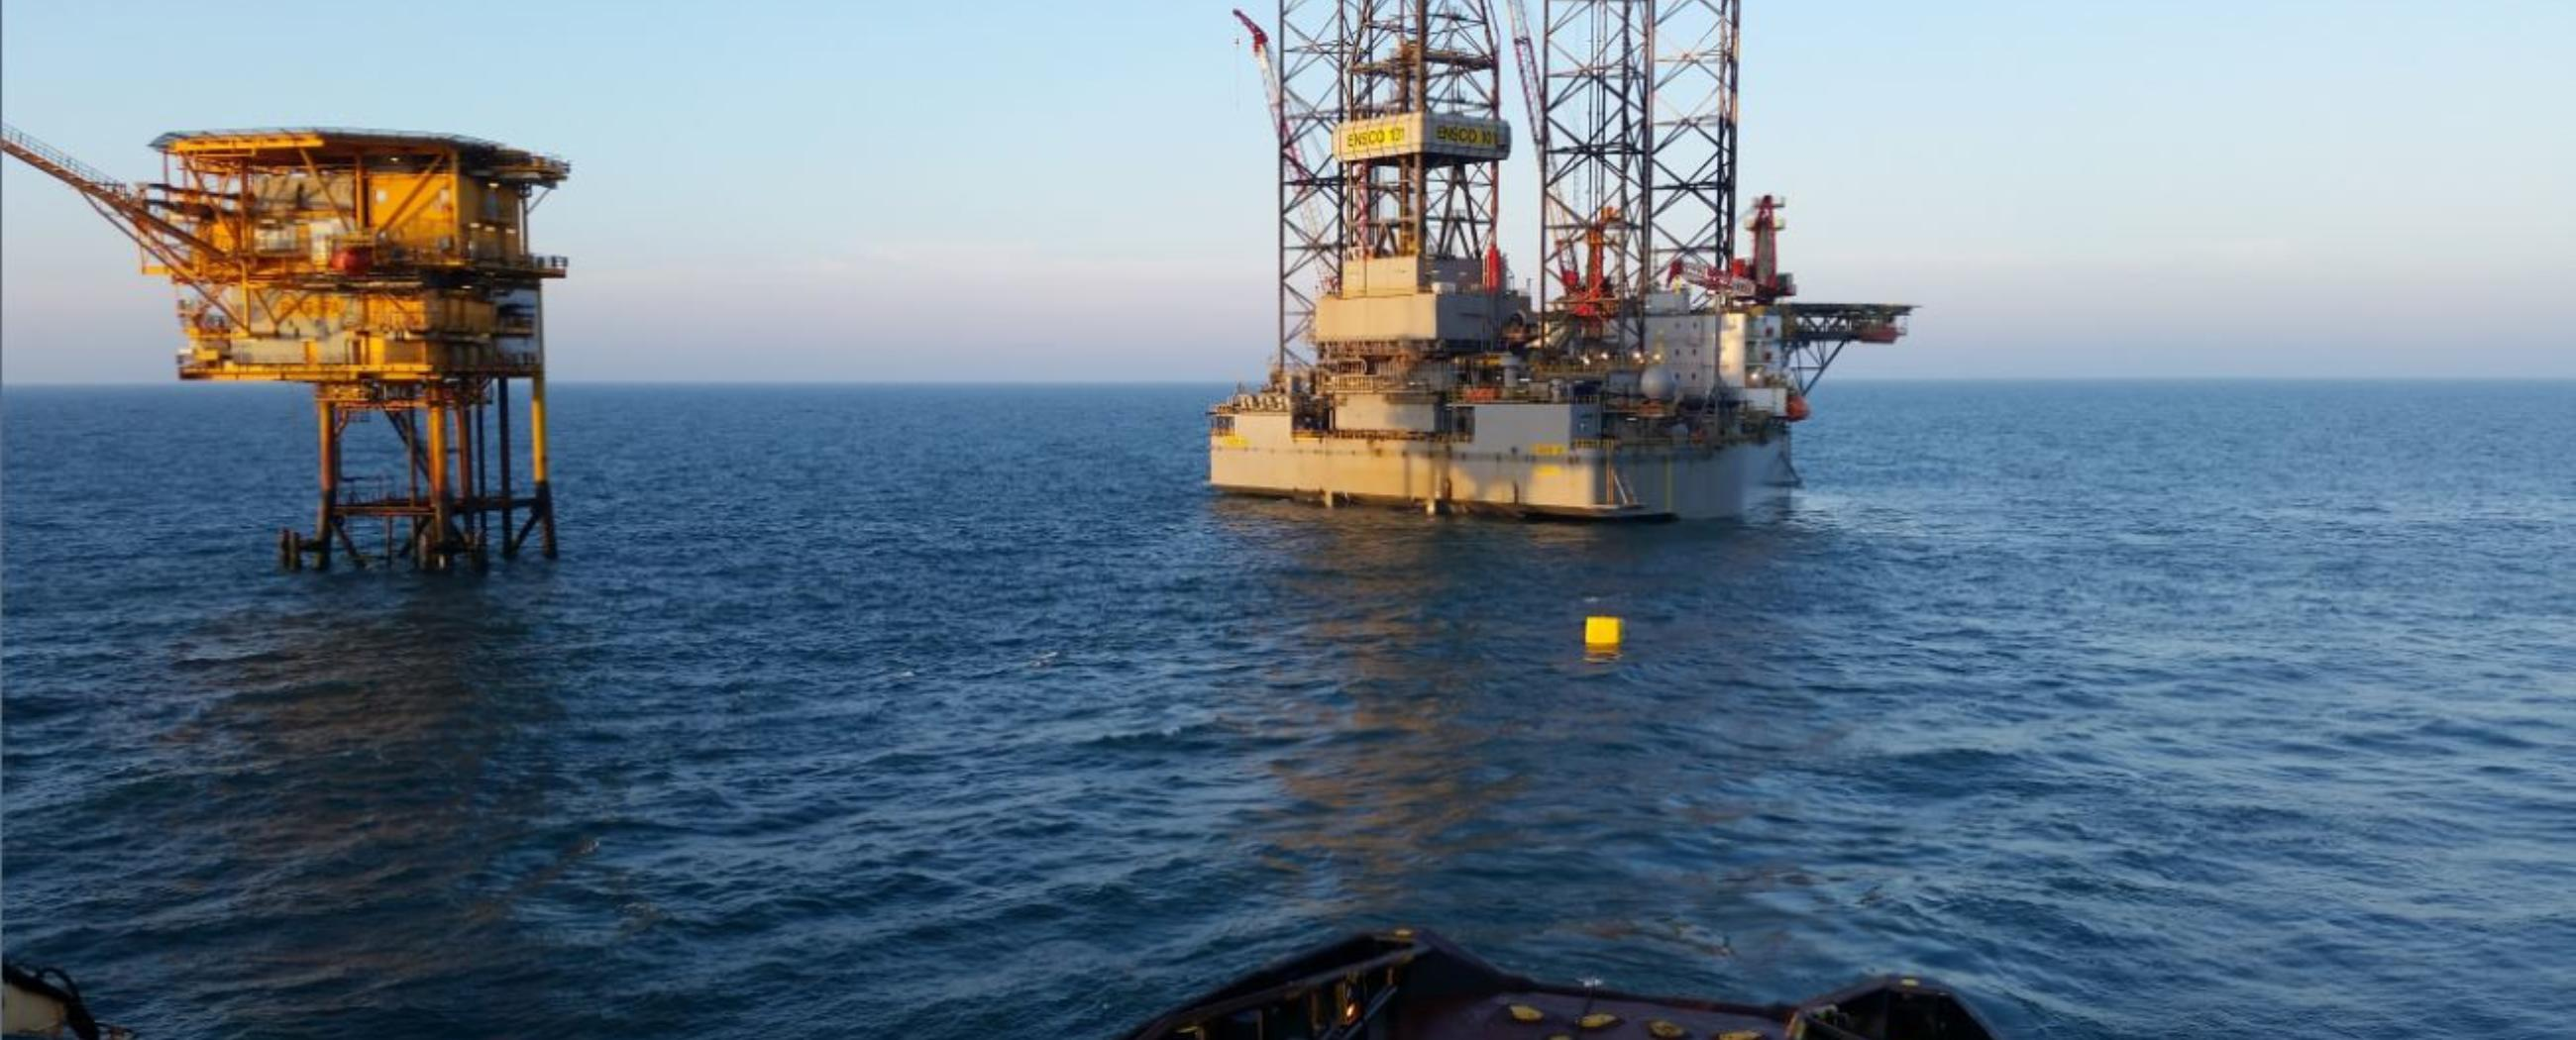 ALP Guard_towage JU-rig ENSCO 101 Northsea.jpeg